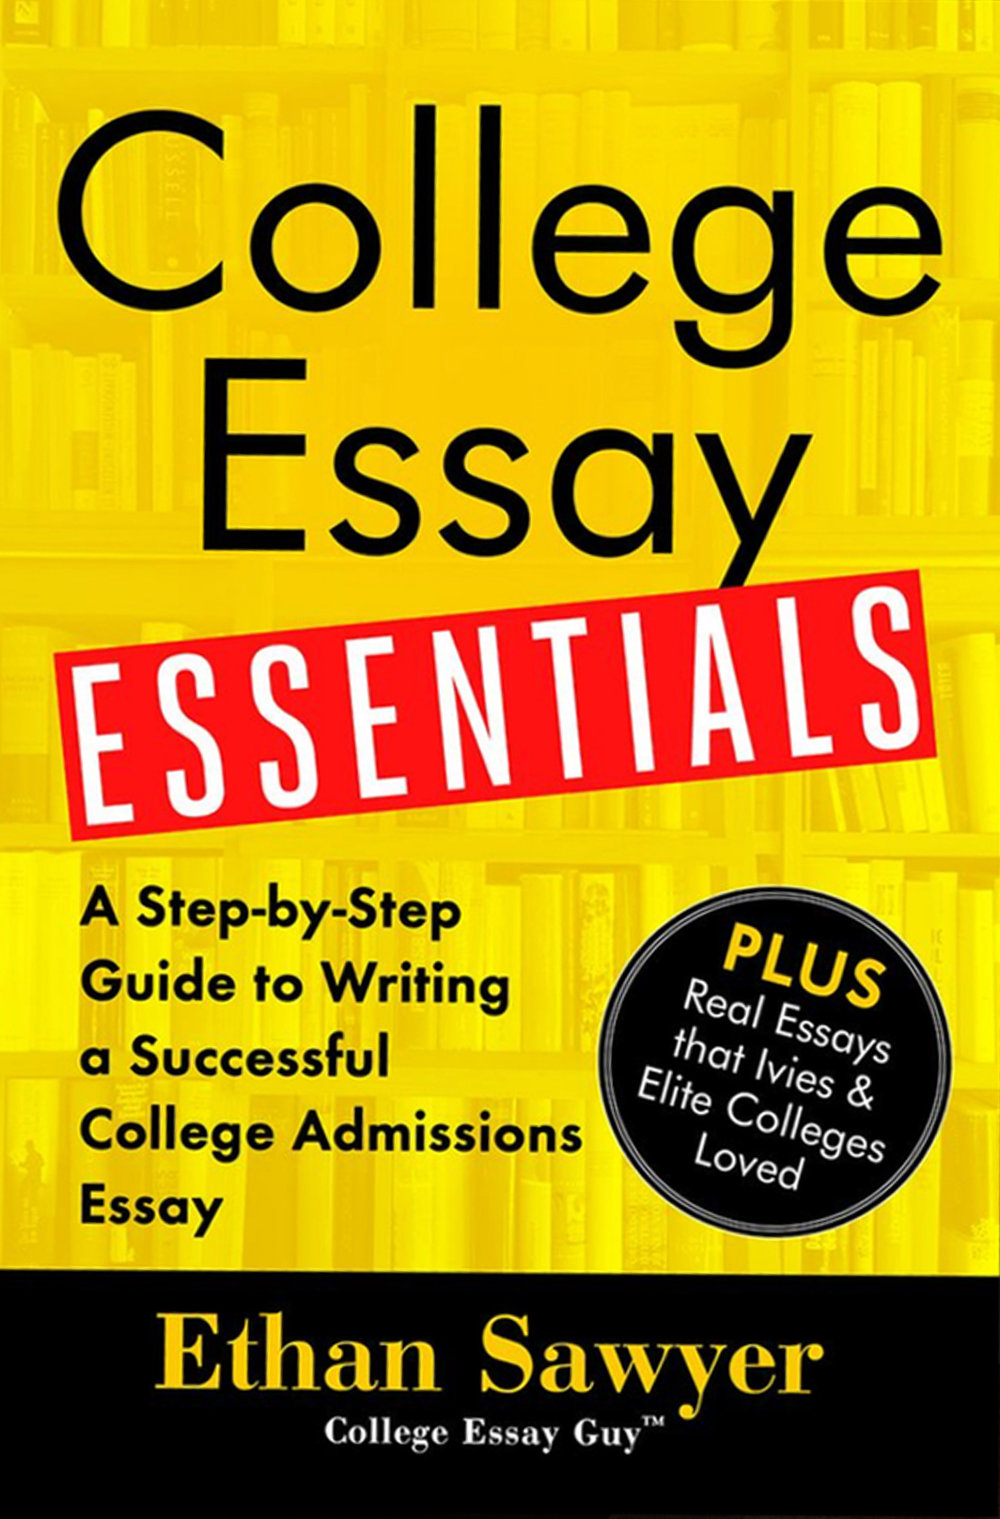 100 brave and interesting questions college essay guy get inspired order the new book college essay essentials